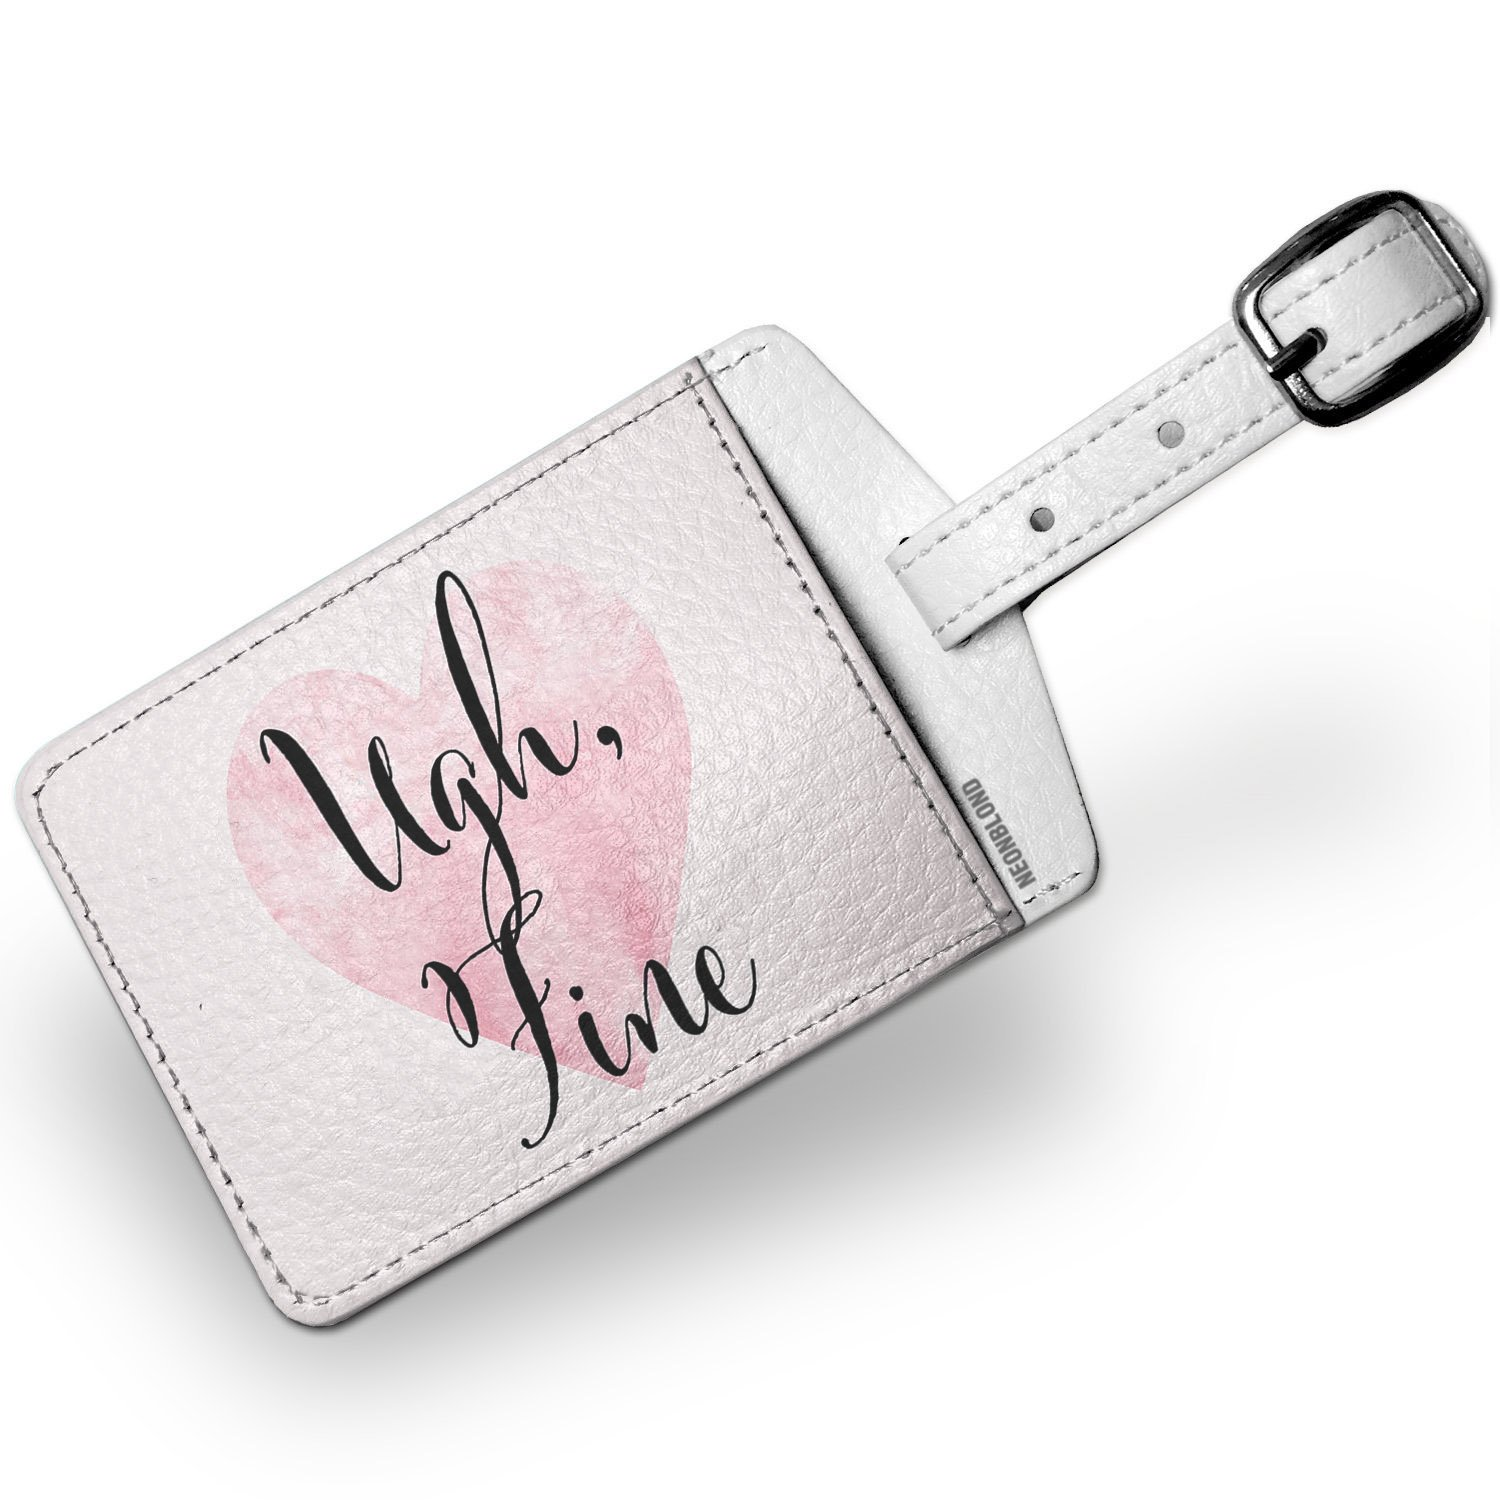 Luggage Tag Ugh, Fine Valentine's Day Fancy Heart - NEONBLOND